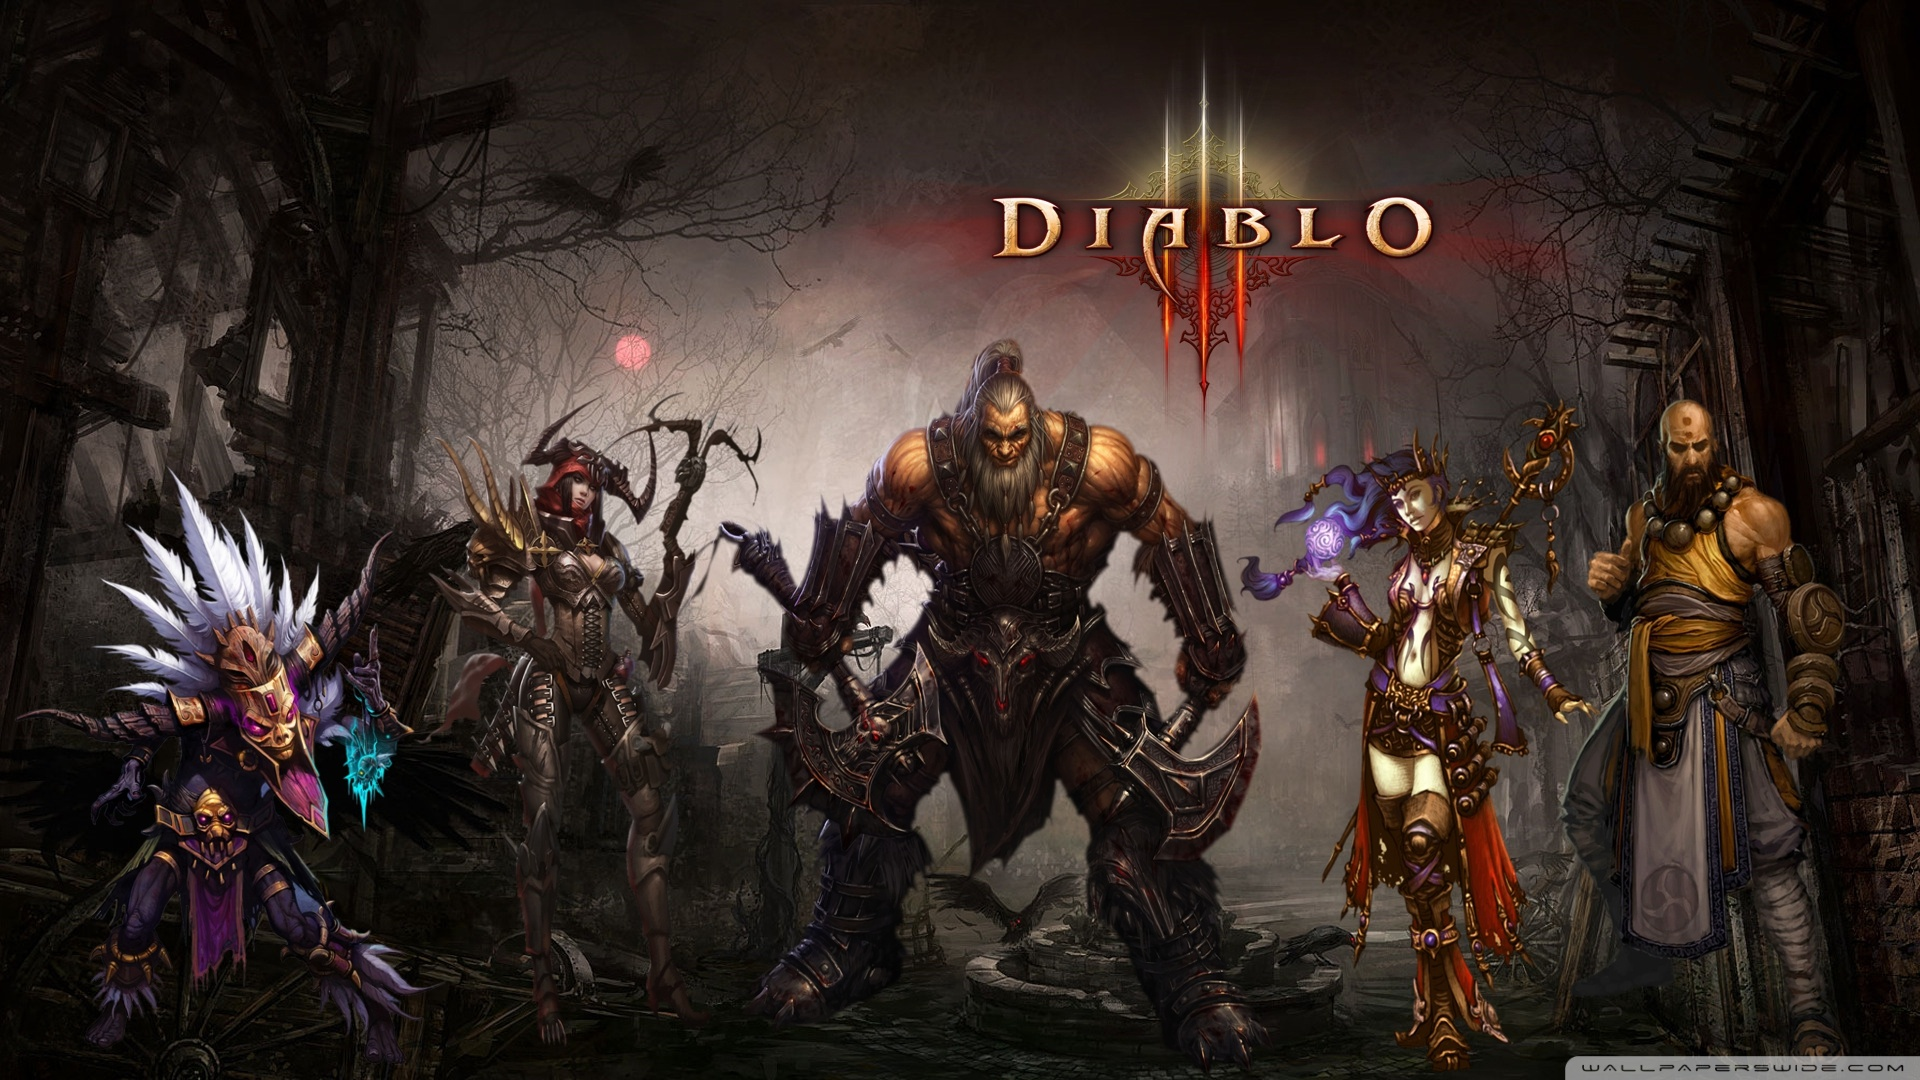 Diablo-HD-free-download-×-Diablo-HD-wallpaper-wpc5804118